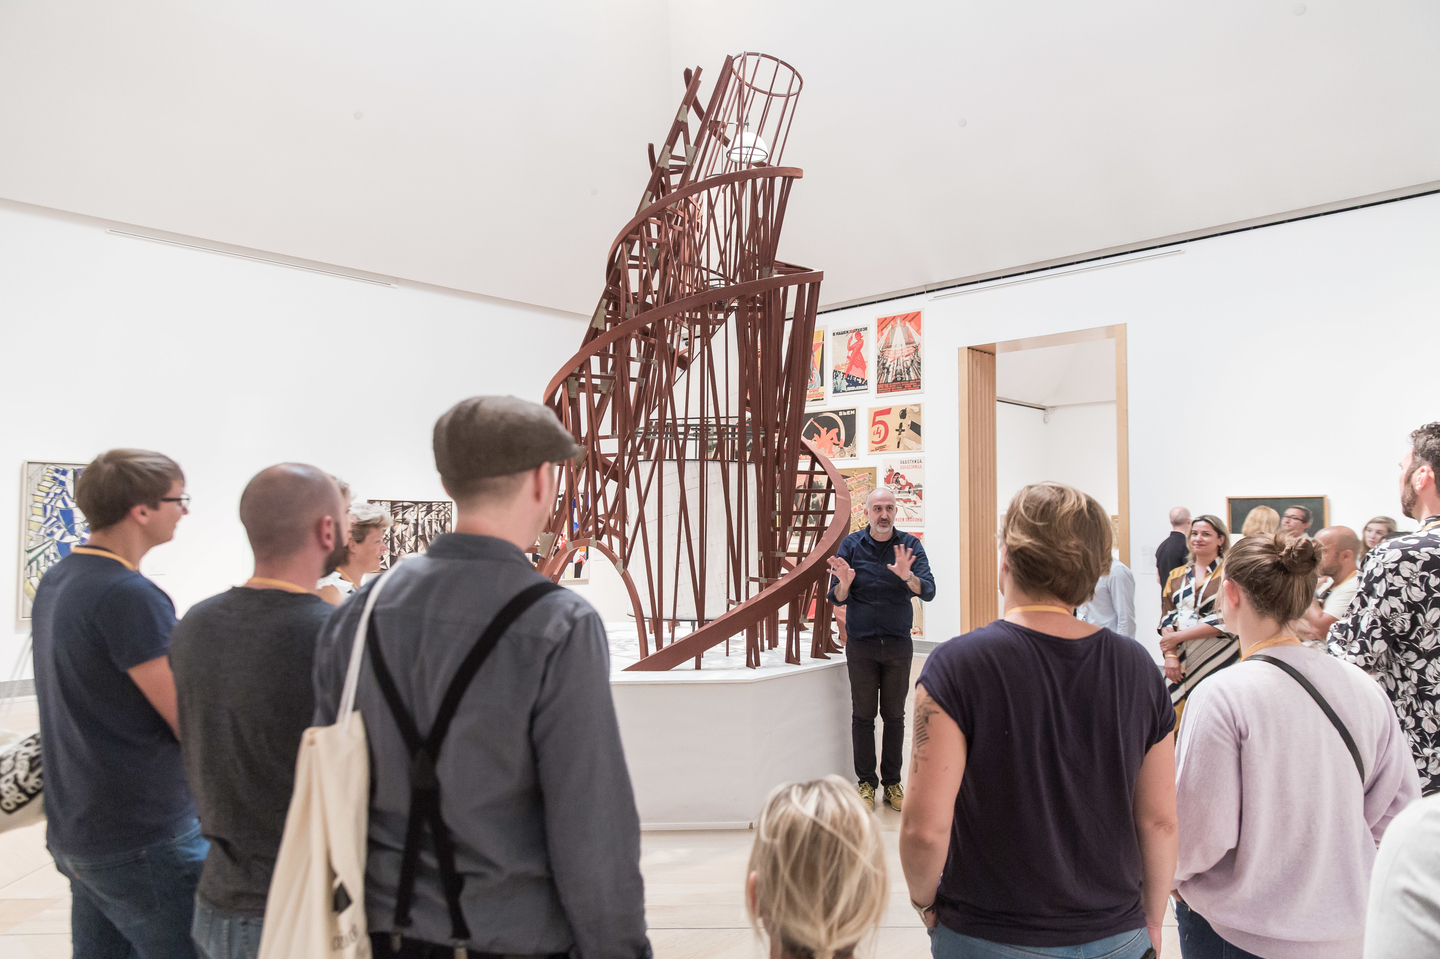 During Exploration Day's Art & Architecture program, registrants enjoyed a guided tour of the Moderna Museet. Photo by Markus Nass/Daimler AG